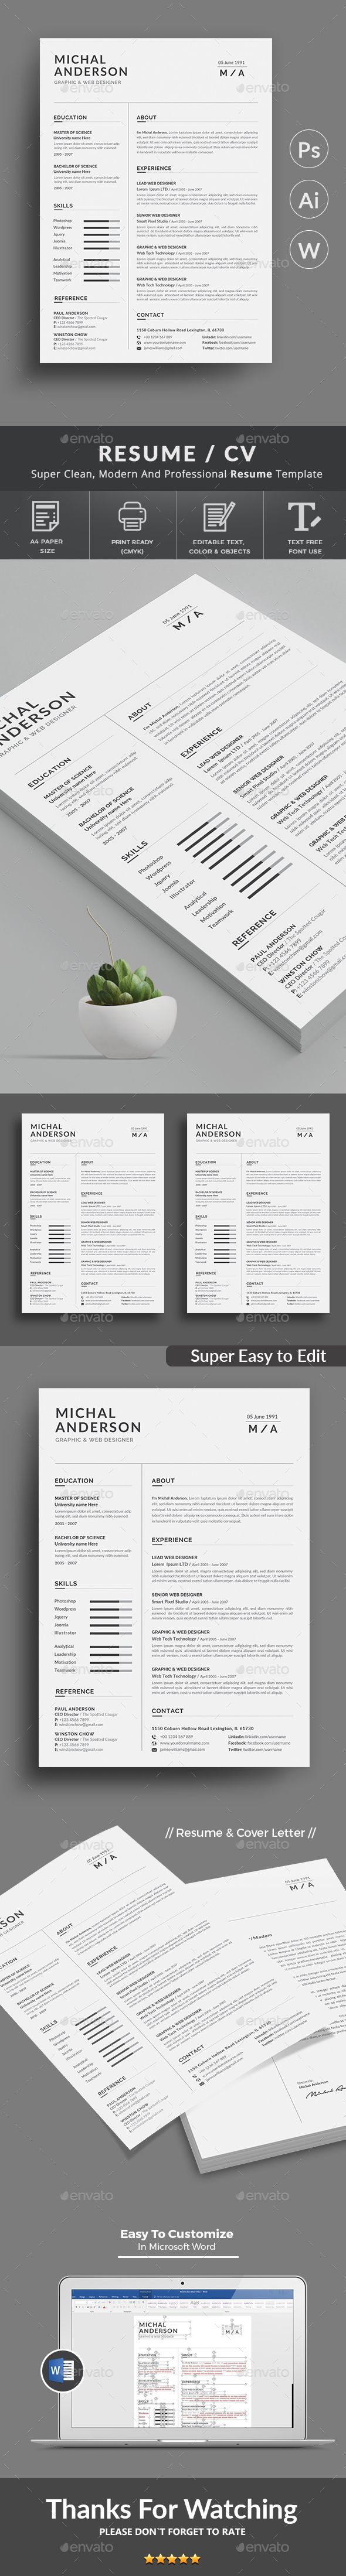 "This is #Resume Templates . ""Resume Templates"" is the super clean,The flexible page designs are easy to use and customize, modern and professional Resume templates to help you land that great job, you a need a great resume. The professionally-written resume examples below can help give you the inspiration you need to build an impressive resume of your own that impresses hiring managers and helps you land the job. Download here: https://graphicriver.net/item/resume/19890472?ref=classicdesignp"